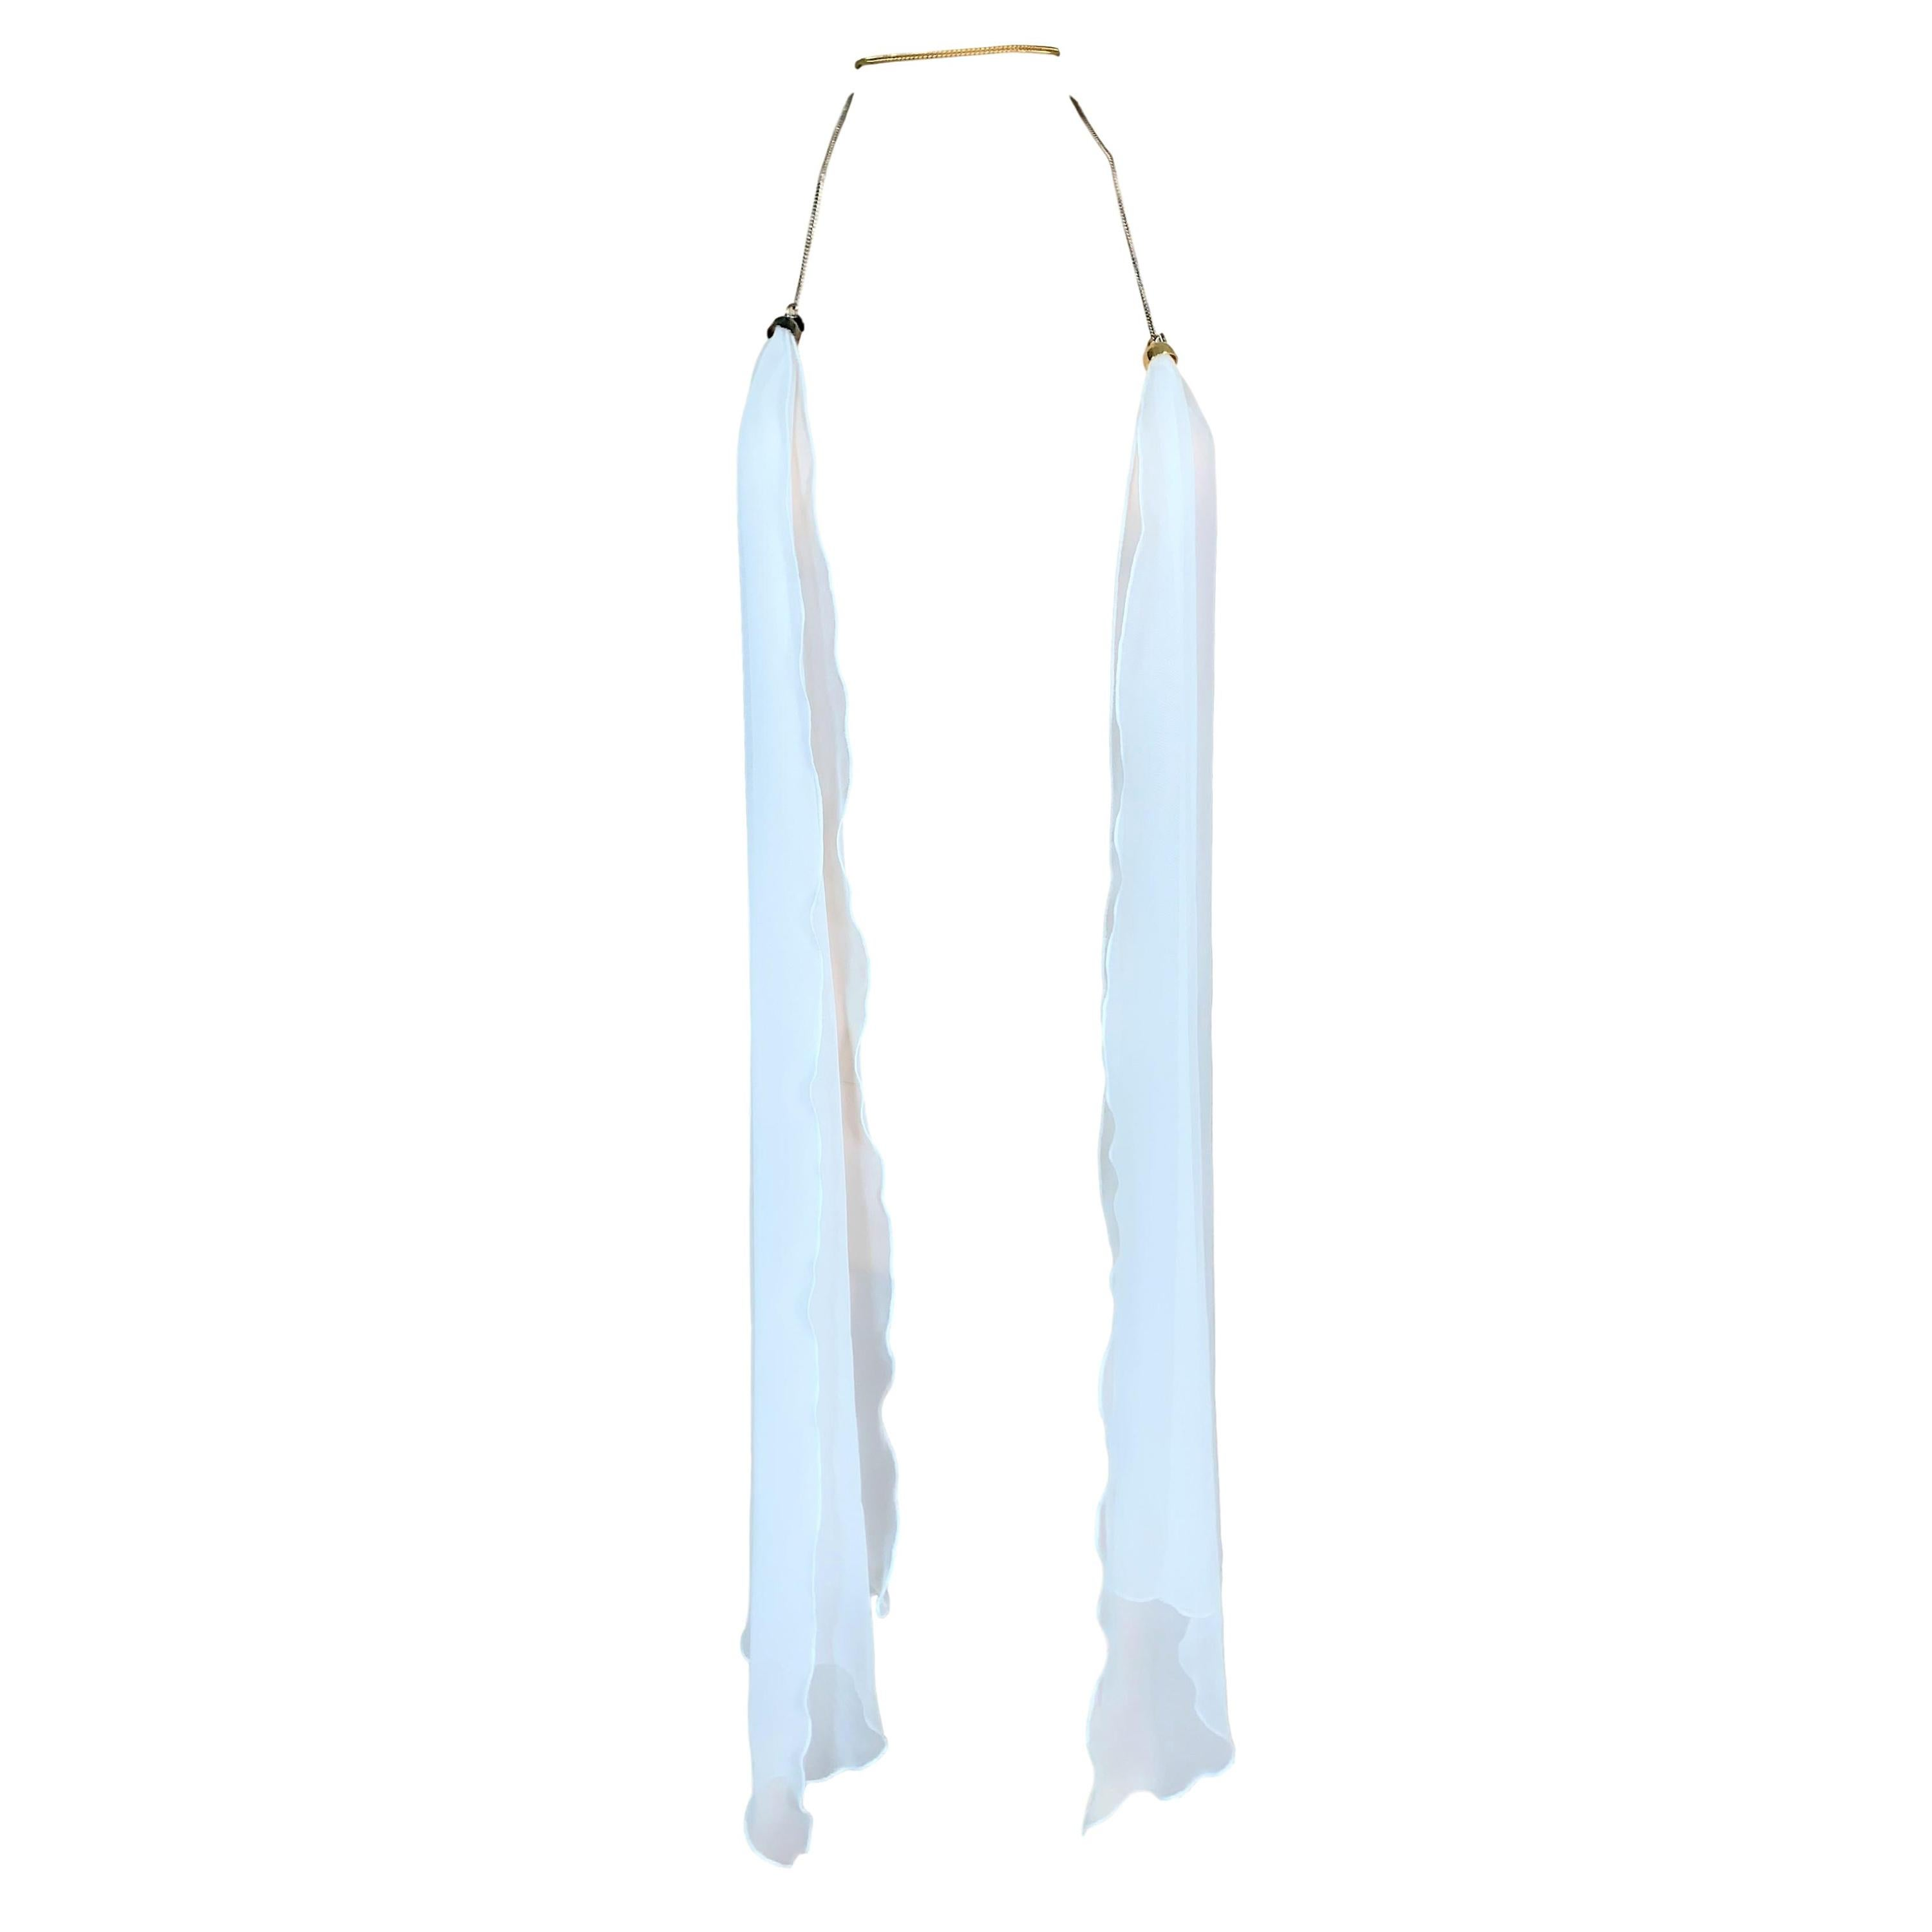 S/S 2006 Maison Martin Margiela Runway White Scarf Necklace Top